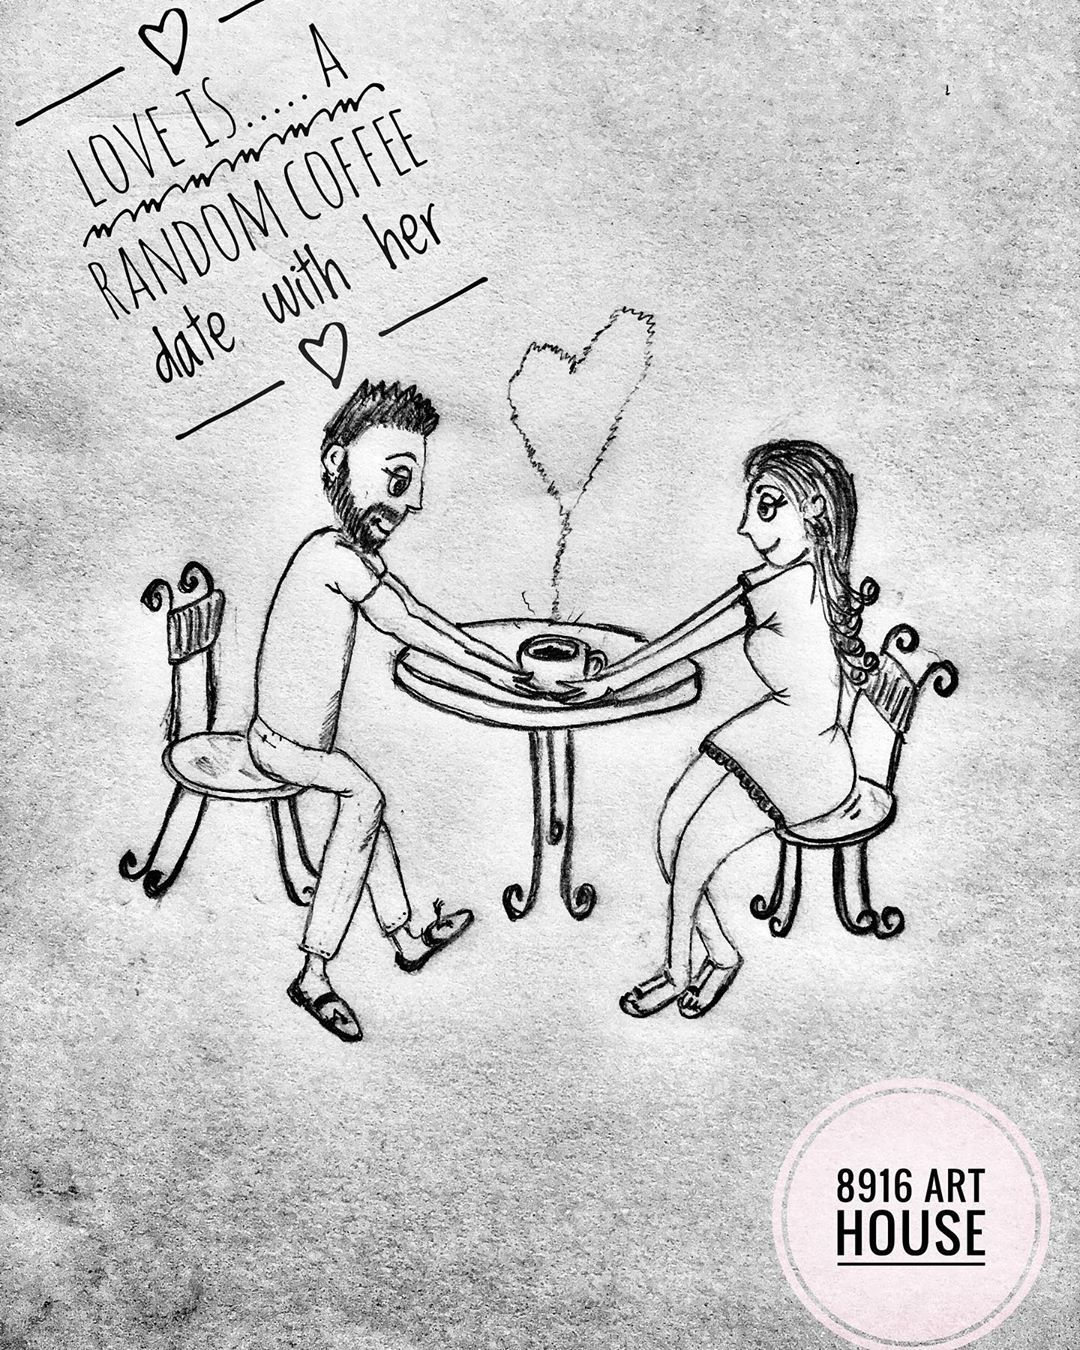 𝟠𝟡𝟙𝟞 𝔸ℝ𝕋 ℍ𝕆𝕌𝕊𝔼 On Instagram Love Is A Random Coffee Date With Her Pin Her Him Comment And Share Home Art Coffee Date Romantic Quotes